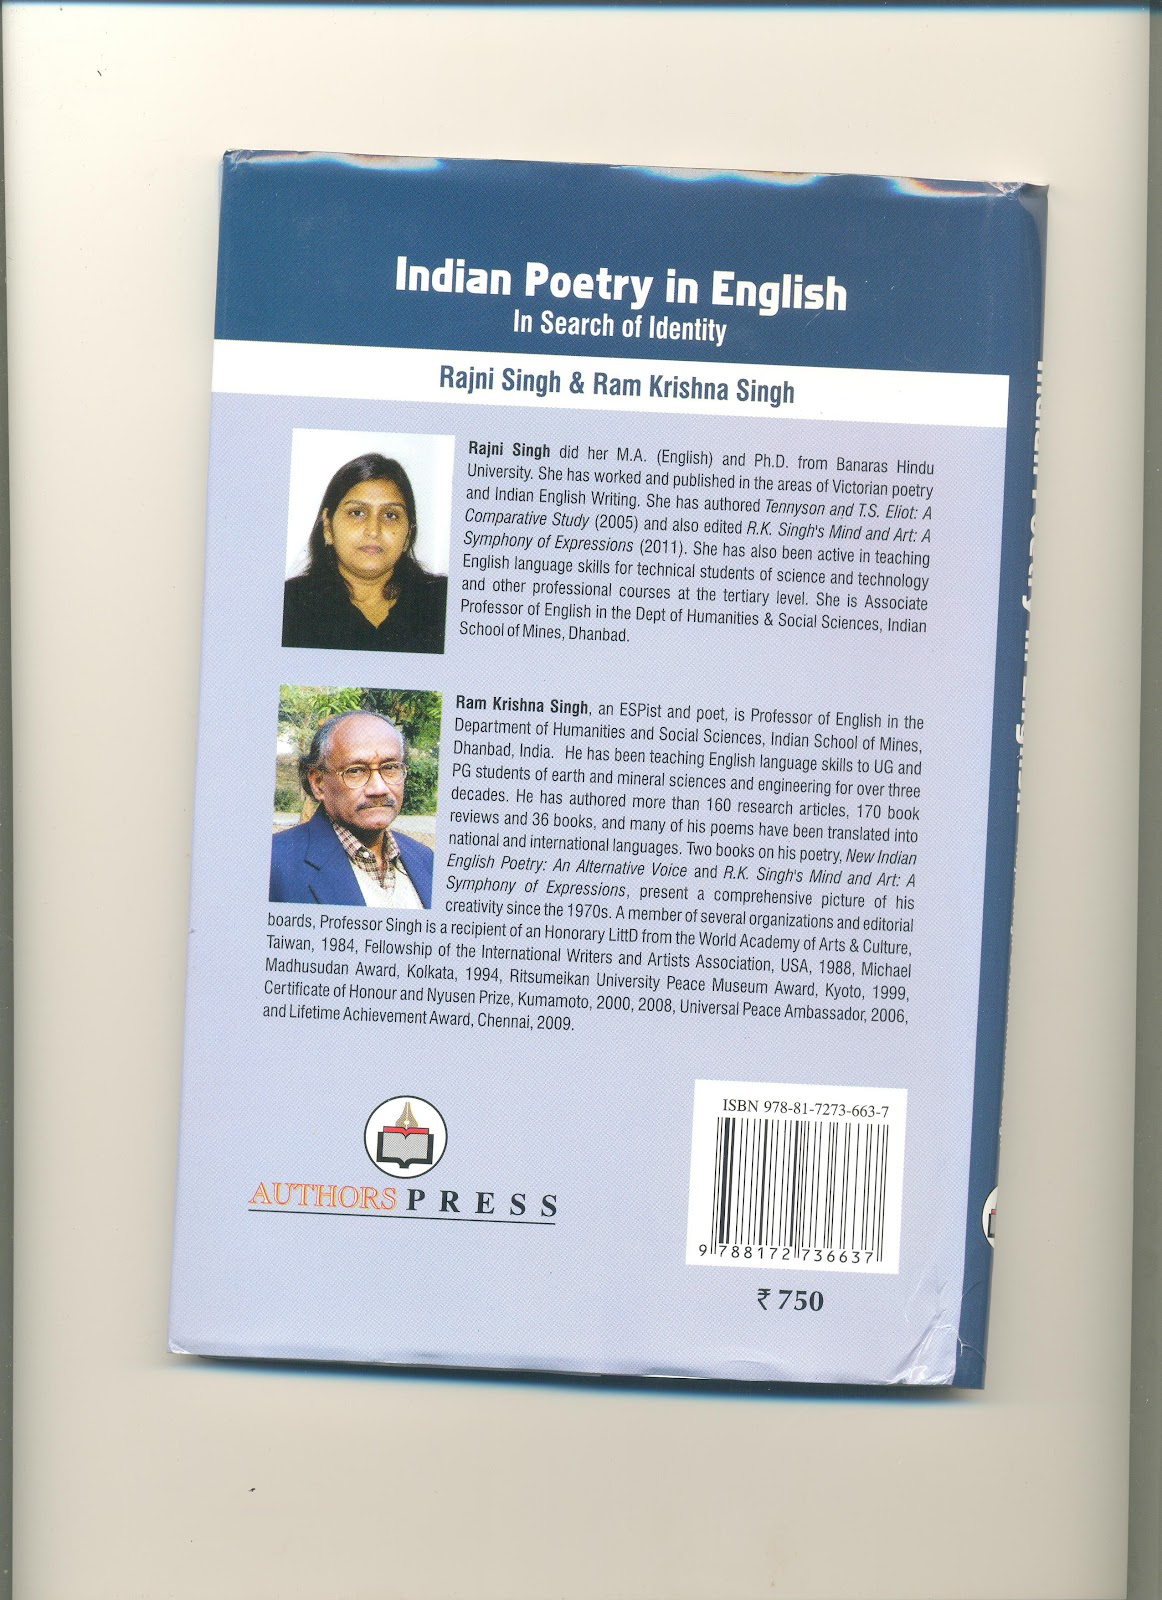 r k singh n english poet n poetry in english in the book contains 22 essays by young researchers who explore several new voices including mani rao i k sharma r k singh d c chambial